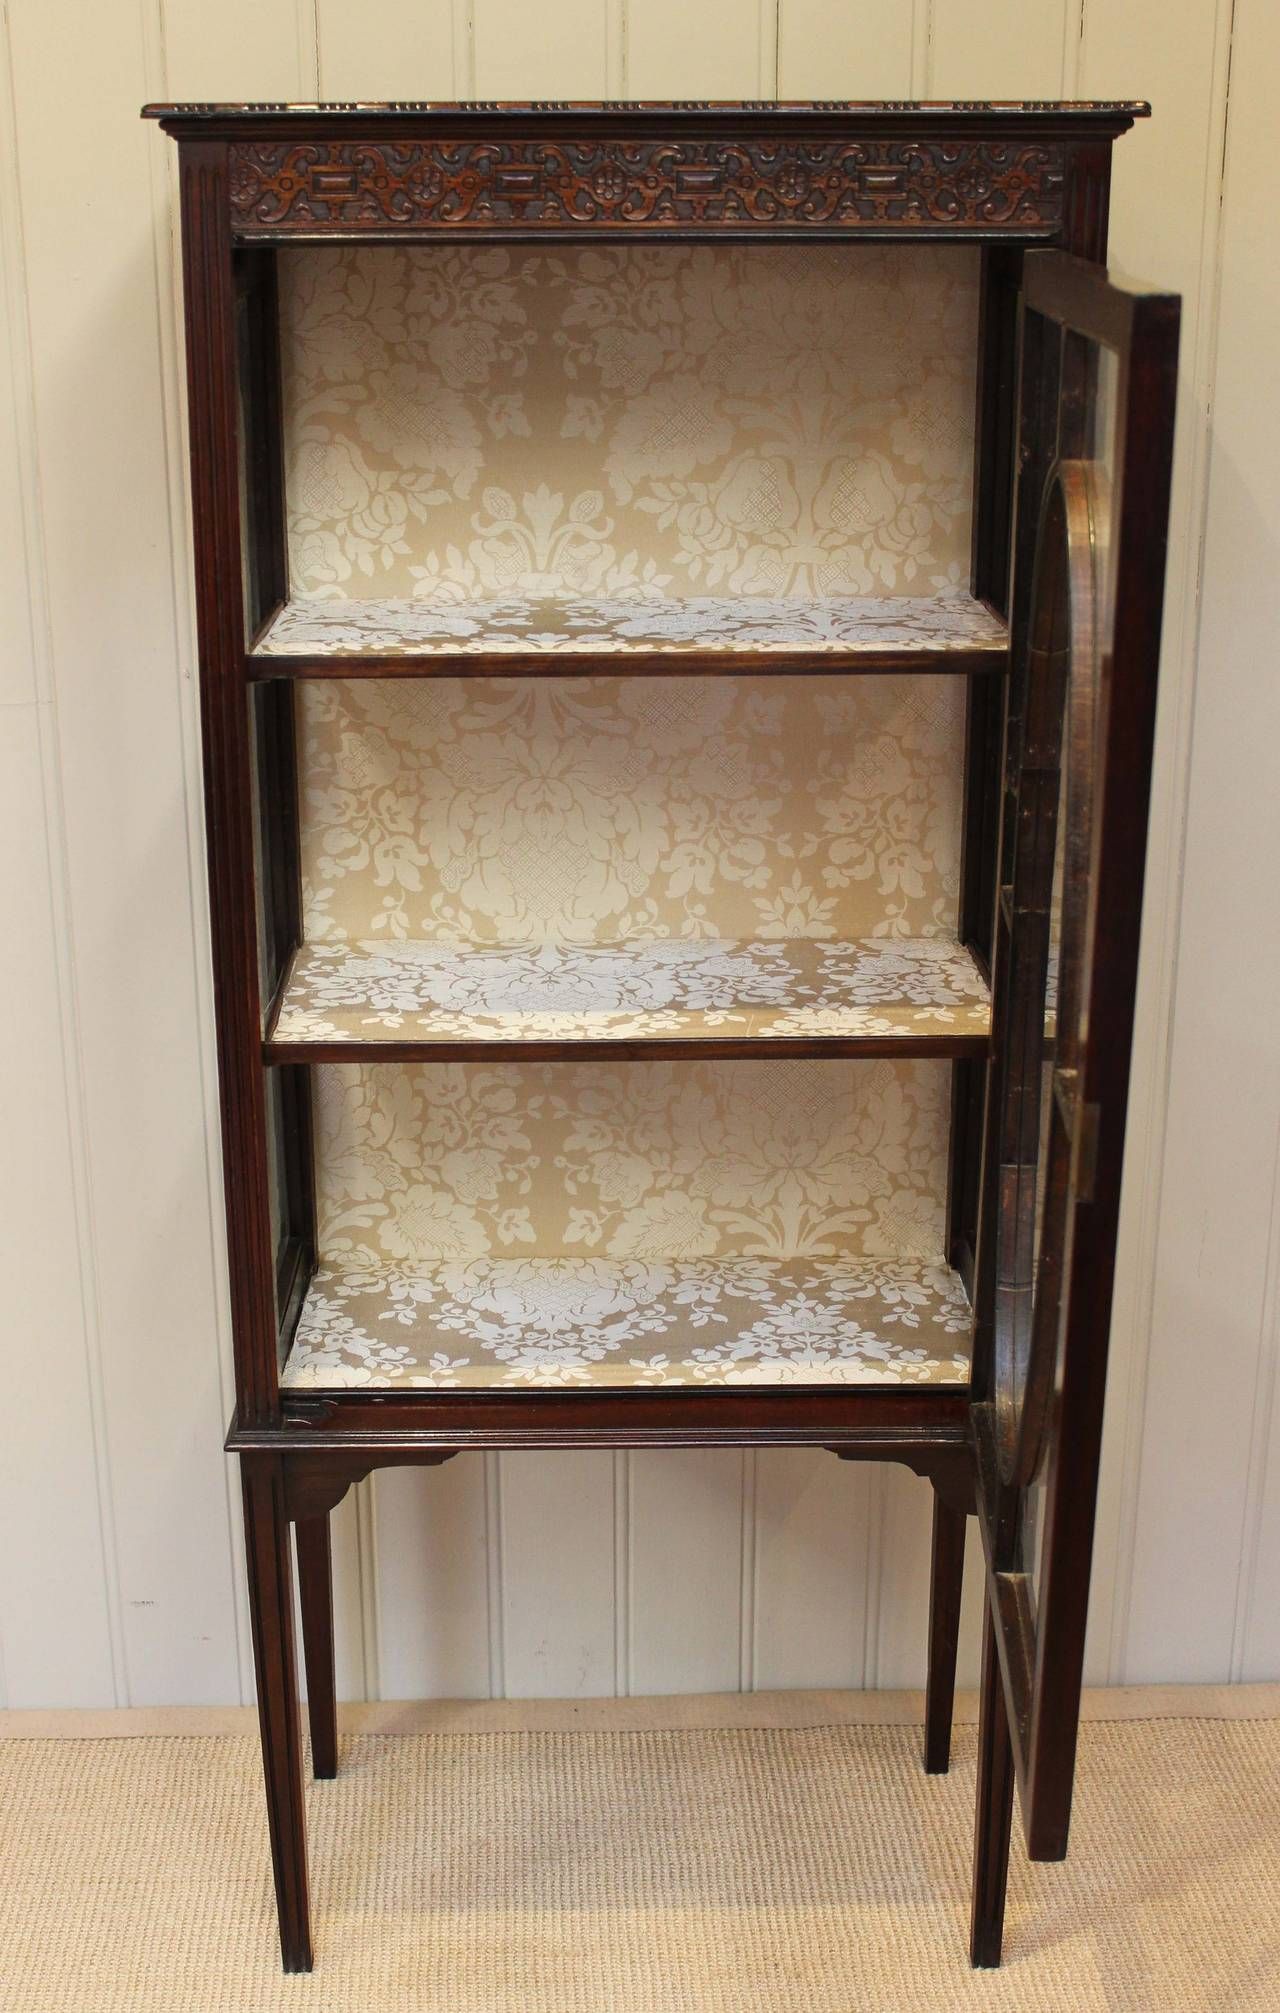 #91663A Mahogany Display Cabinet At 1stdibs with 1280x2013 px of Recommended Mahogany Display Cabinets With Glass Doors 20131280 save image @ avoidforclosure.info